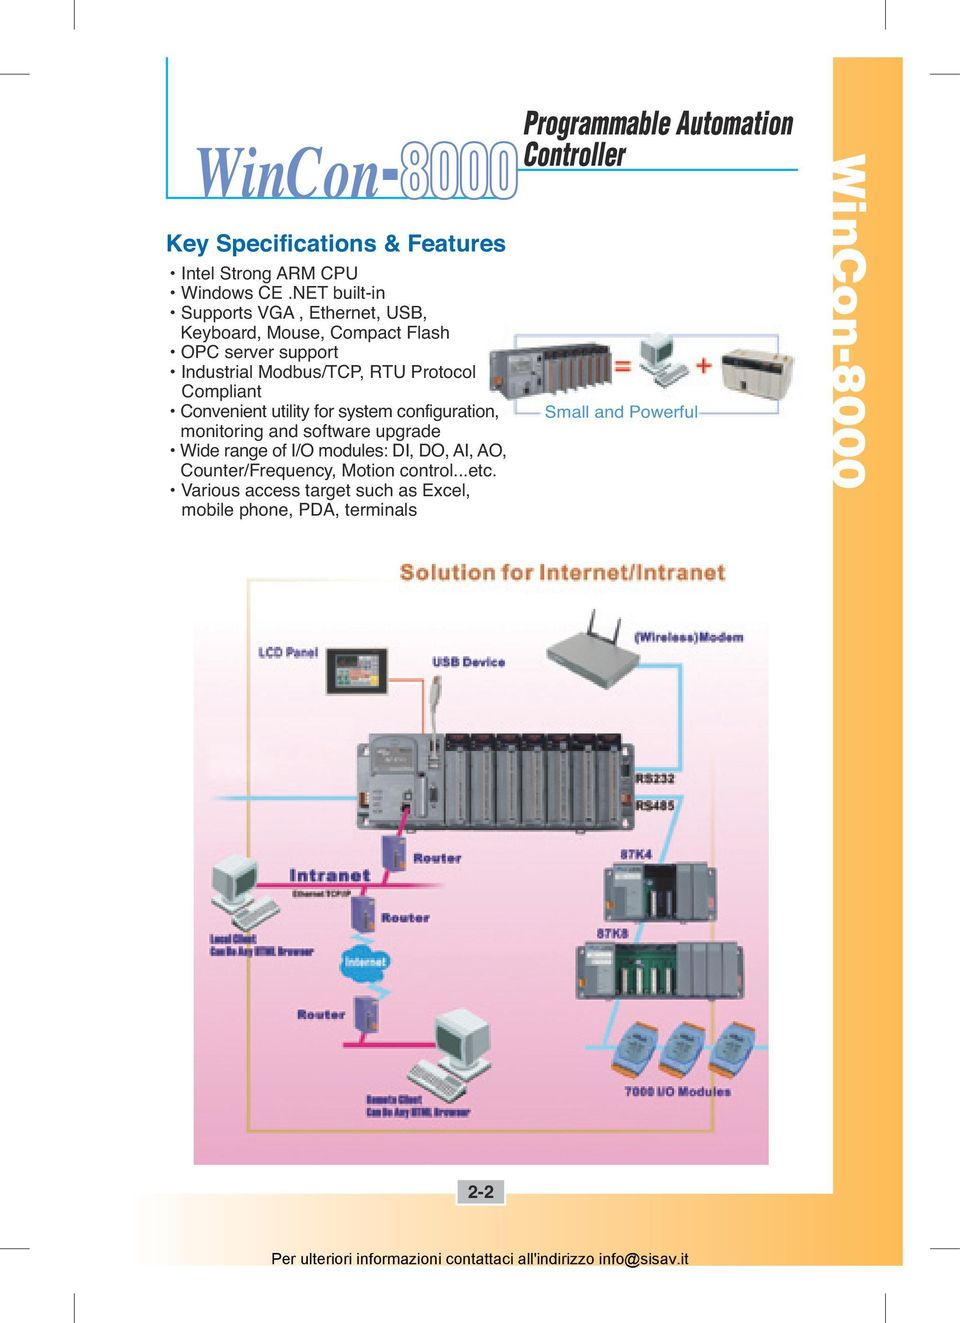 Protocol Compliant Convenient utility for system configuration, monitoring and software upgrade Wide range of I/O